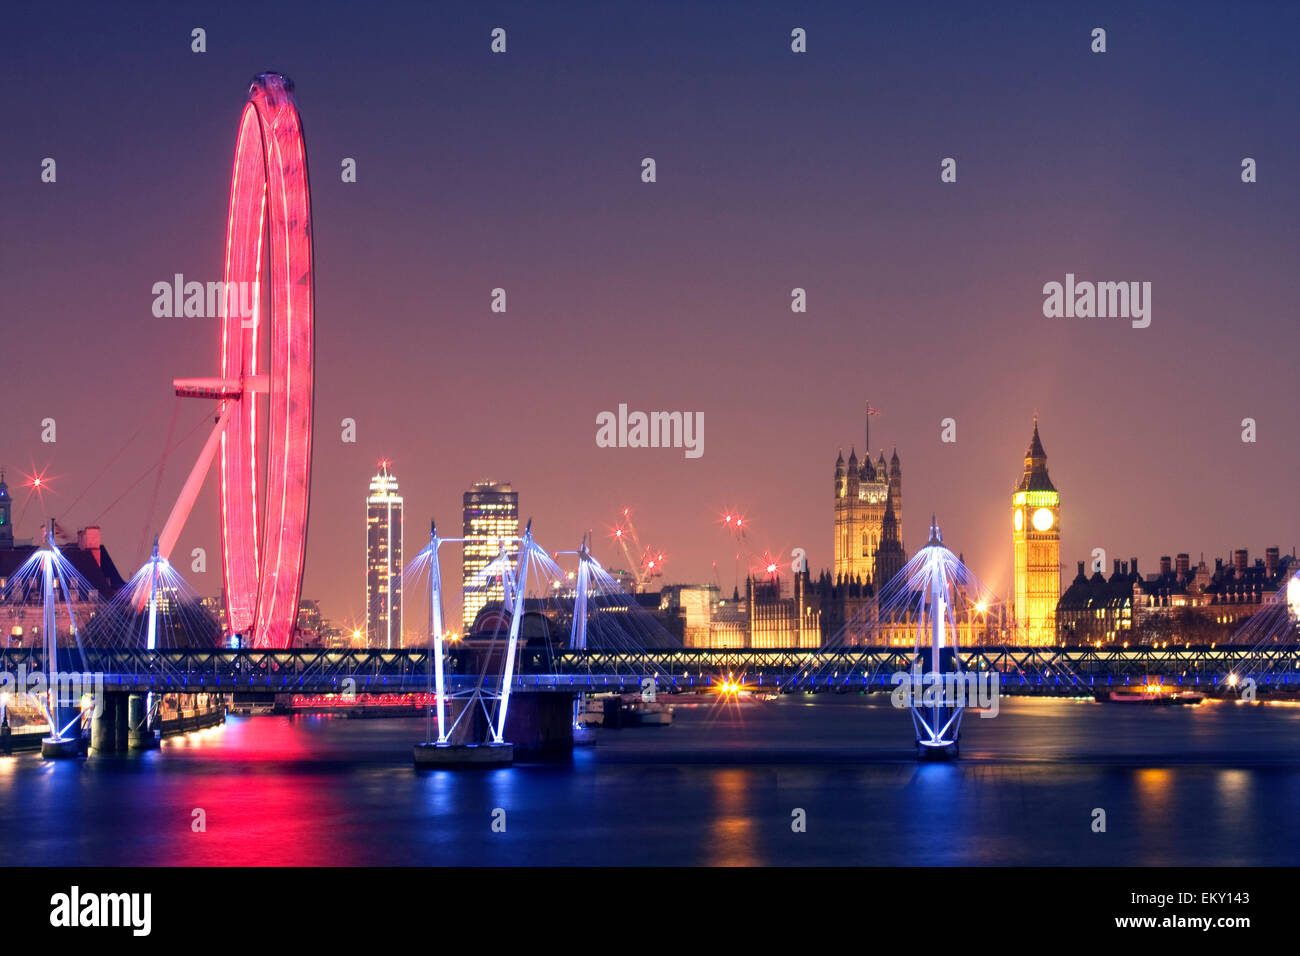 London at night. London Eye Hungerford Bridge and Golden Jubilee Bridges and Palace of Westminster with illuminated Stock Photo